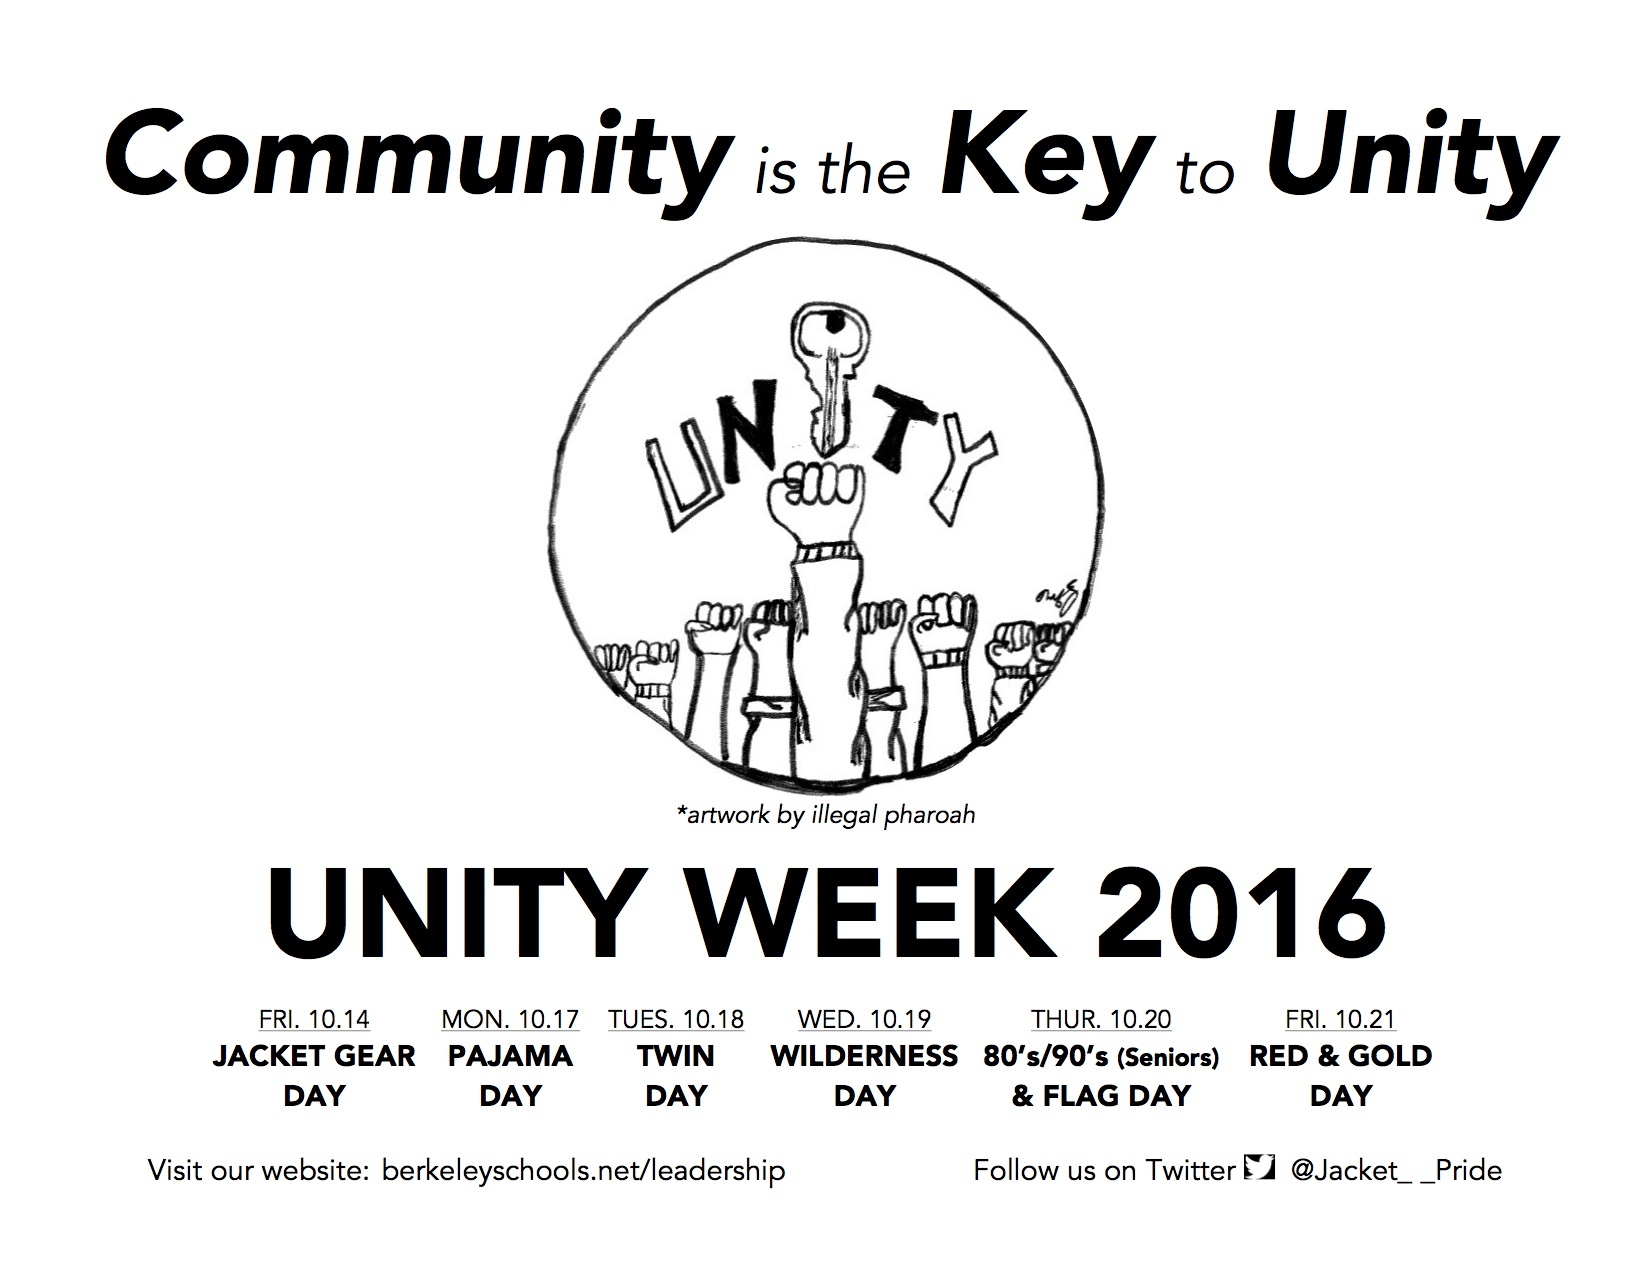 UNITY WEEK 2016 THEME DAYS